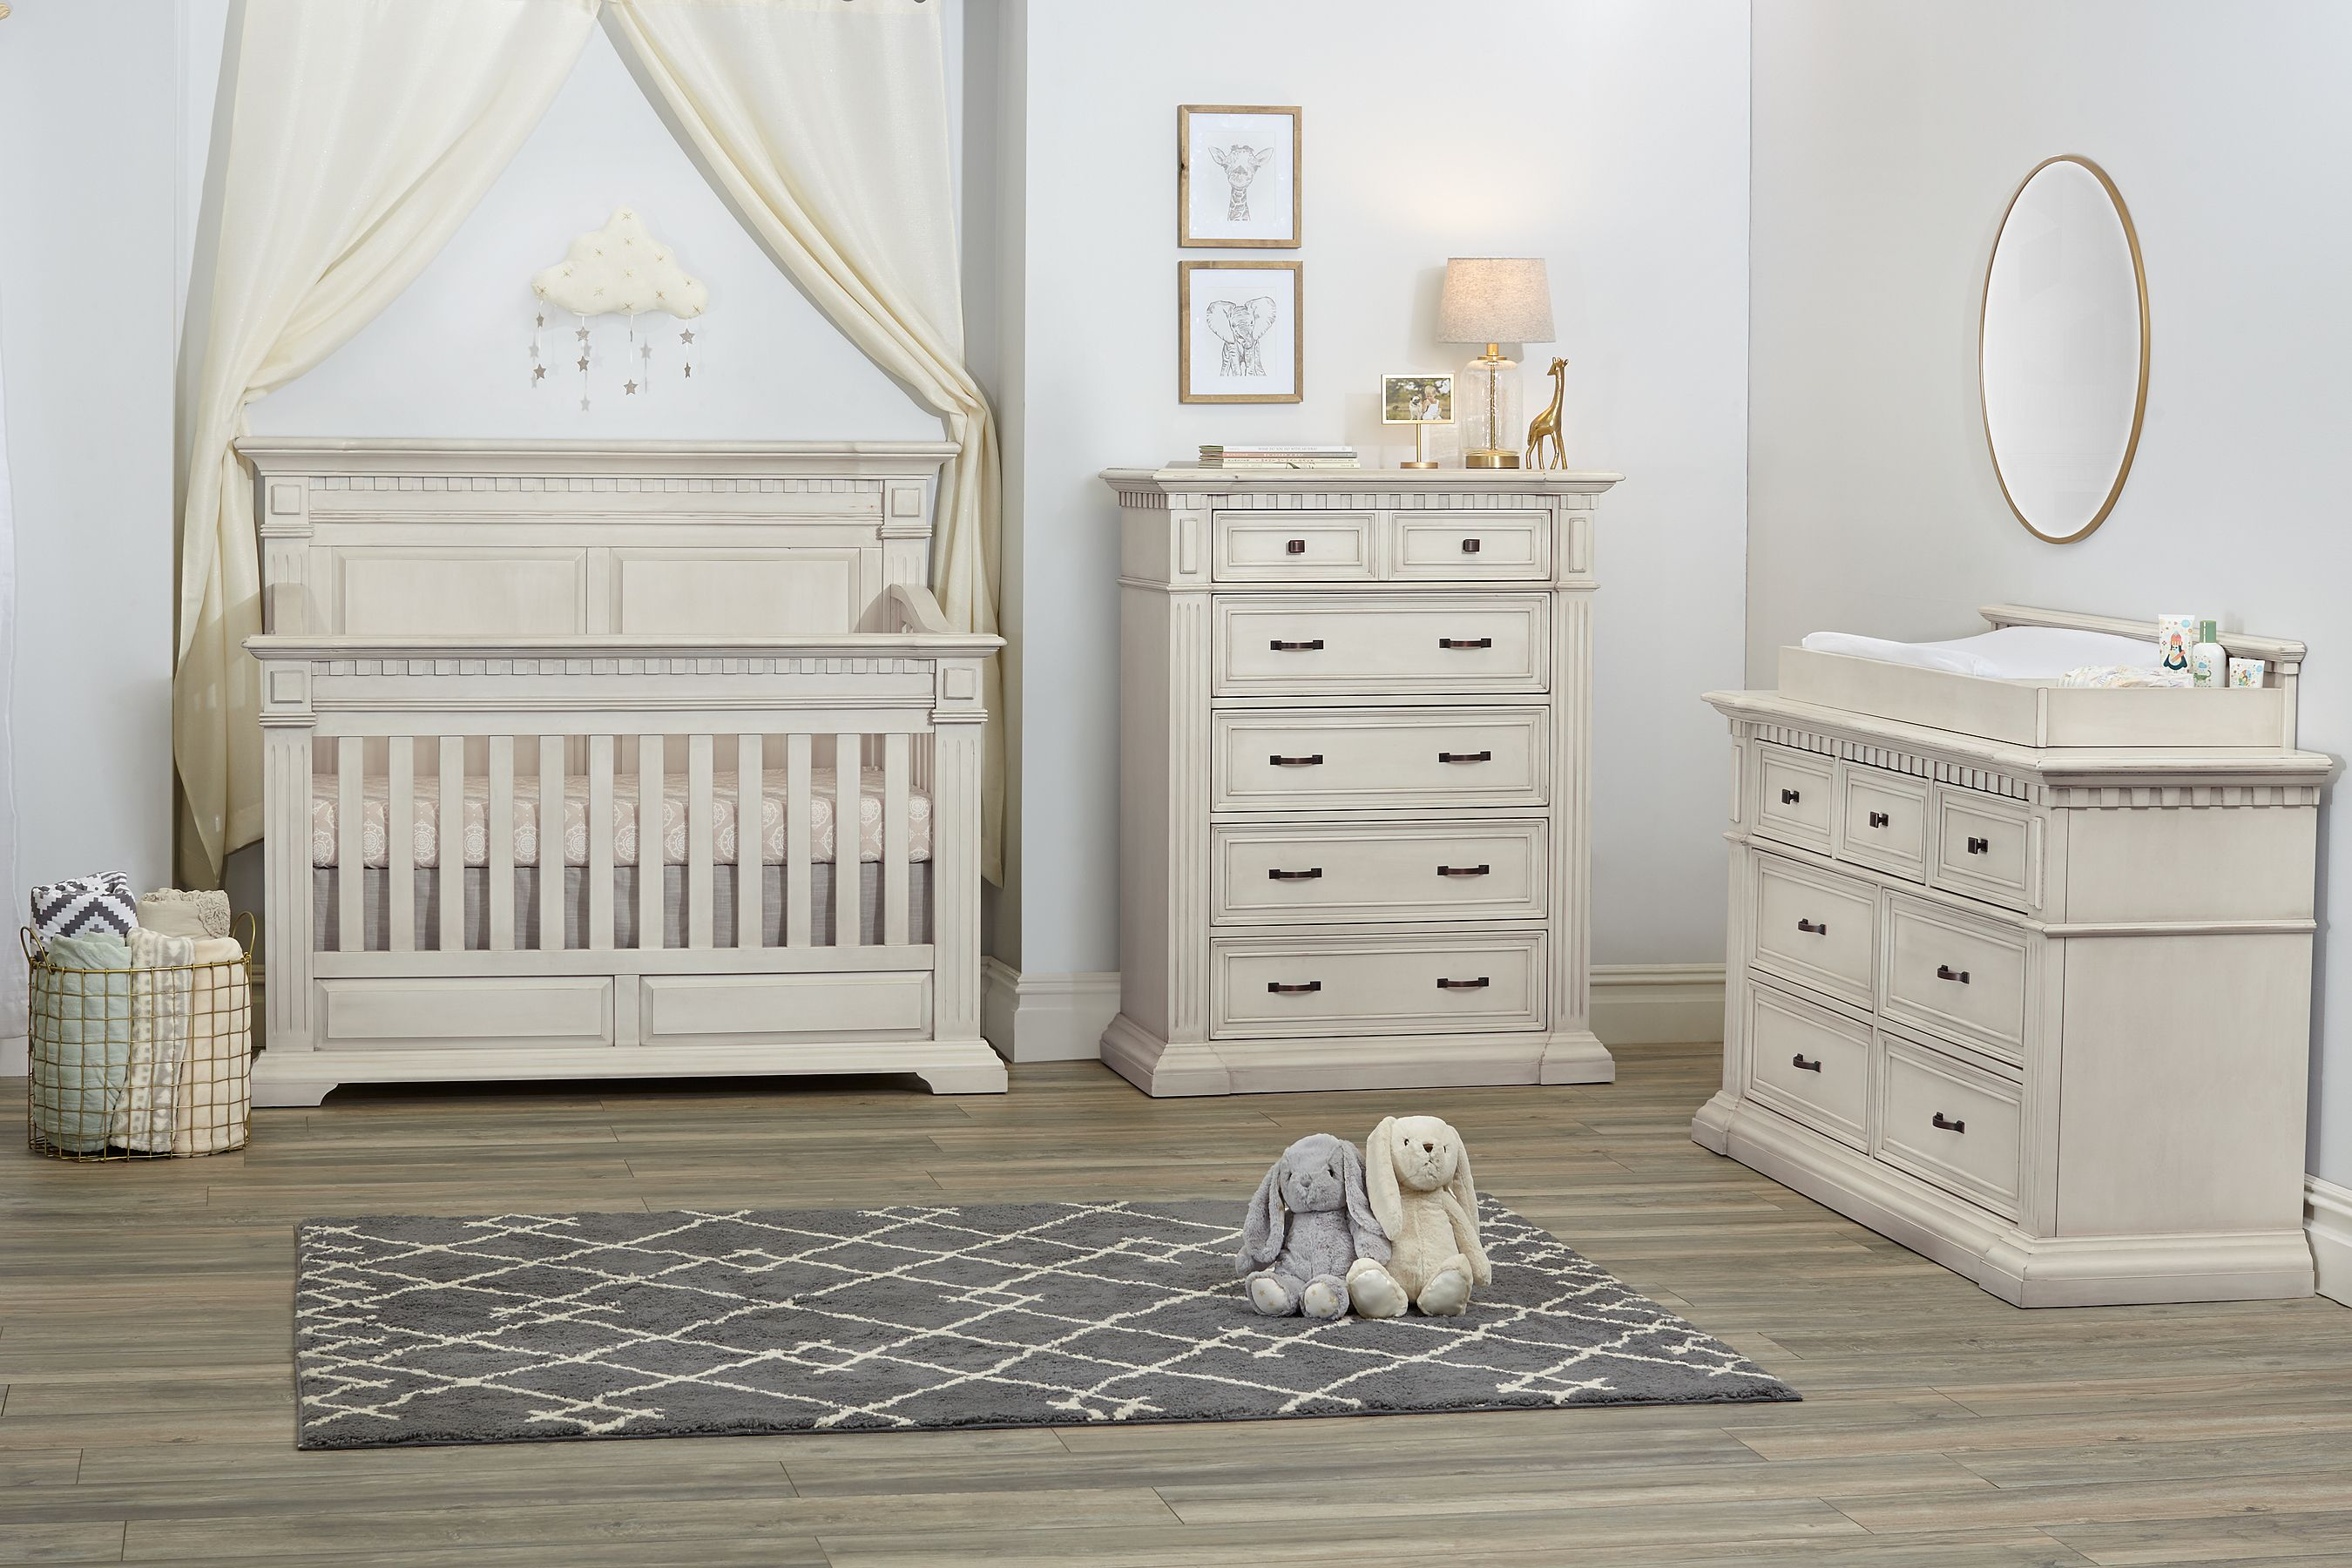 Kingsley Venetian Collection In Antique White Kingsley Crib Nursery White Nursery Furniture Nursery Furniture Sets White Nursery Furniture Sets